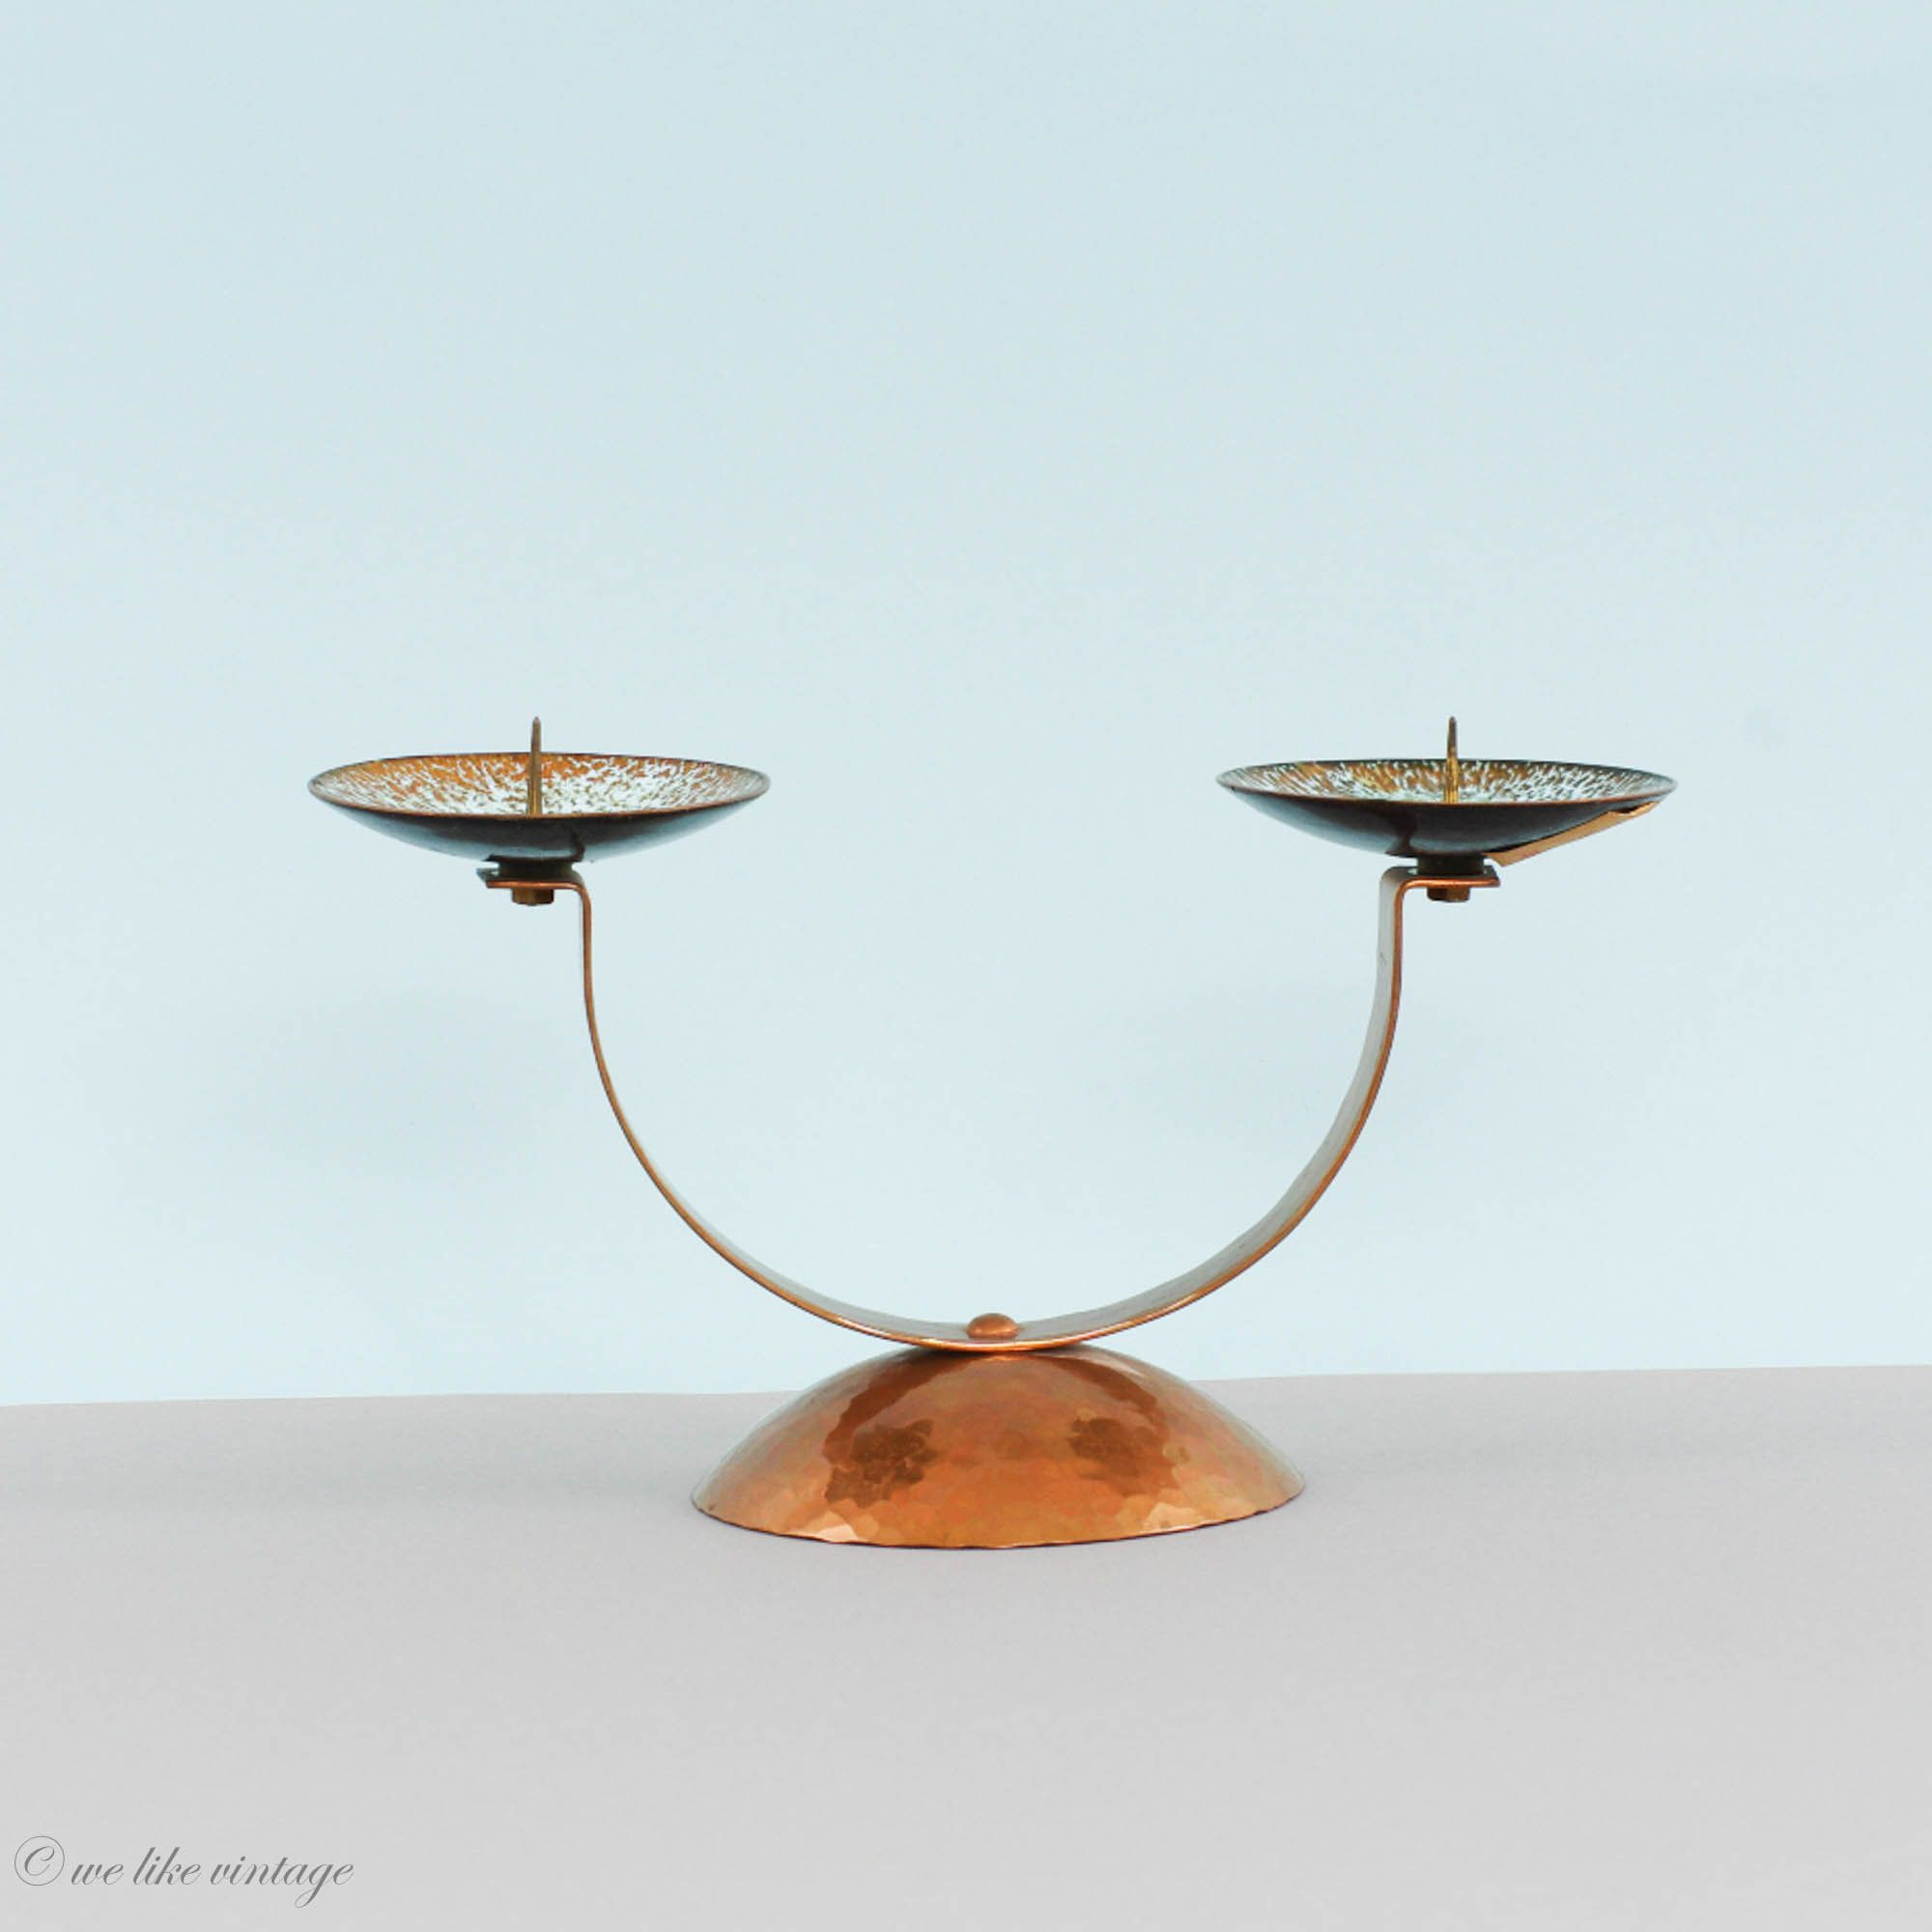 Design candlestick stainless steel candlestick candle holder 60s 70s chandelier candle holder candlestick space mid century space tulip foot